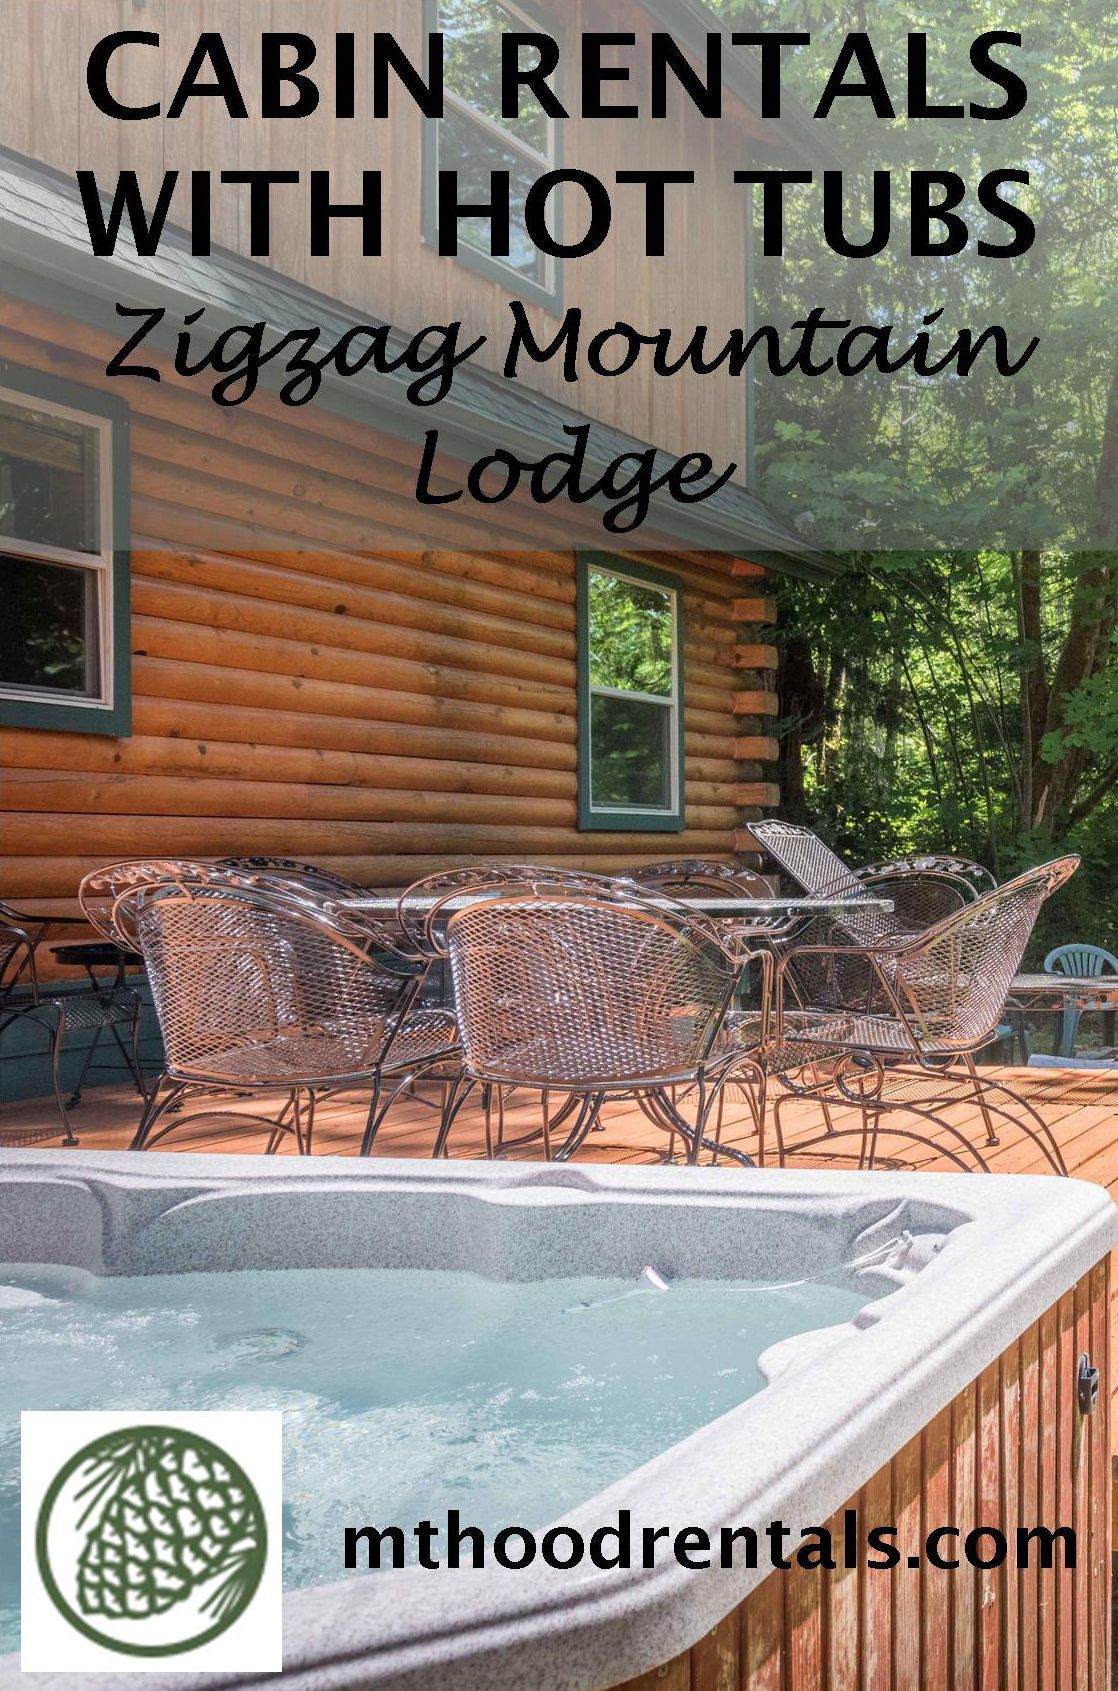 Zigzag Mountain Lodge is an inviting log home with